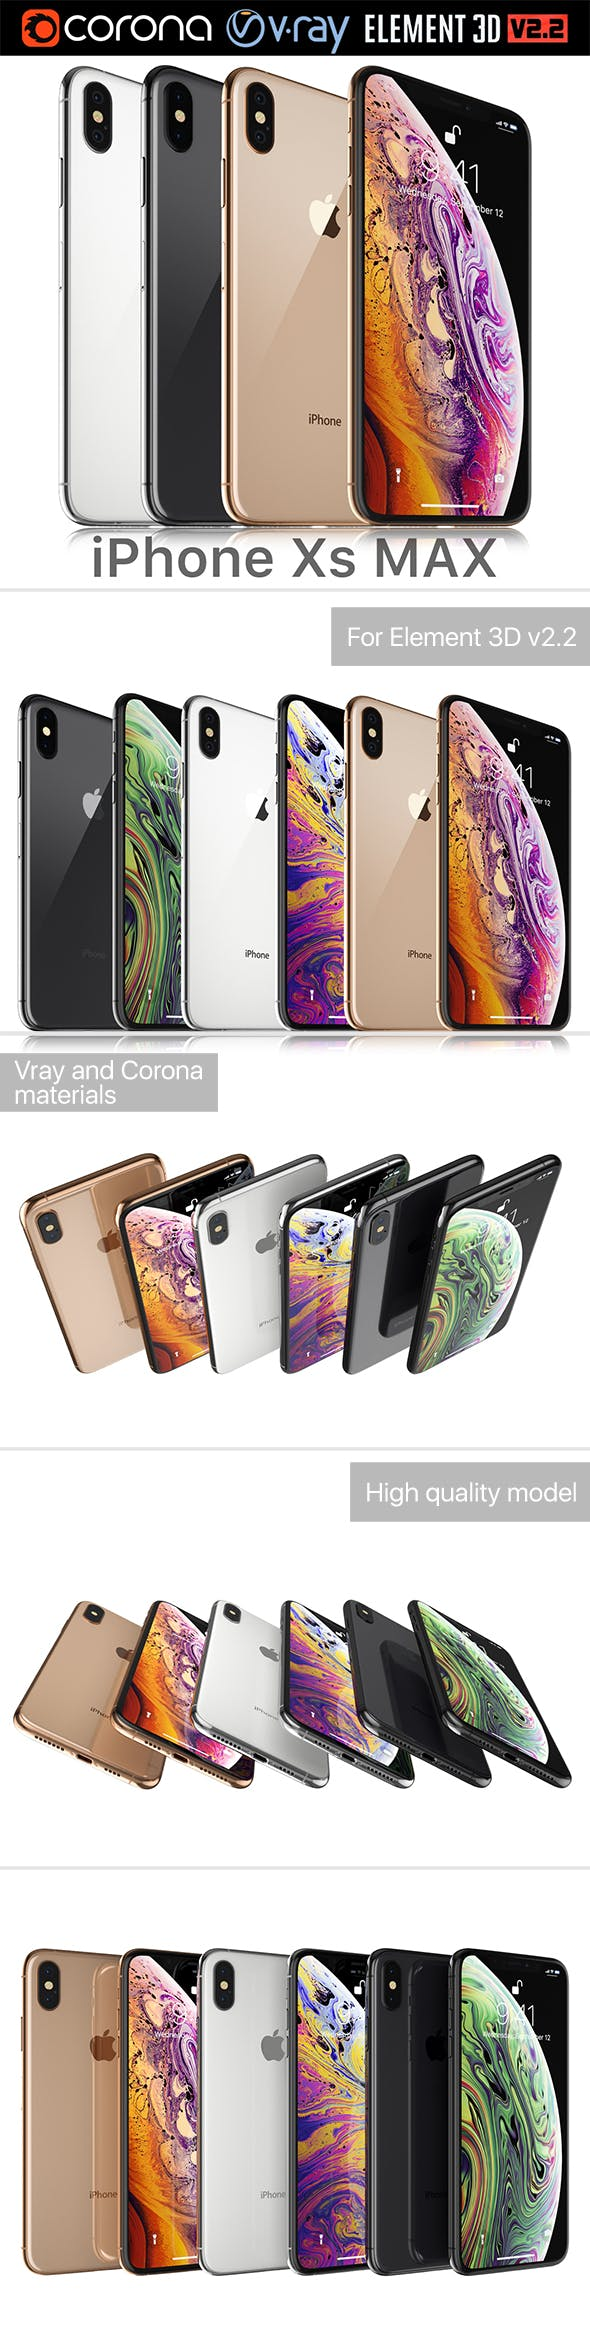 Apple iPhone XS MAX all colors - 3DOcean Item for Sale